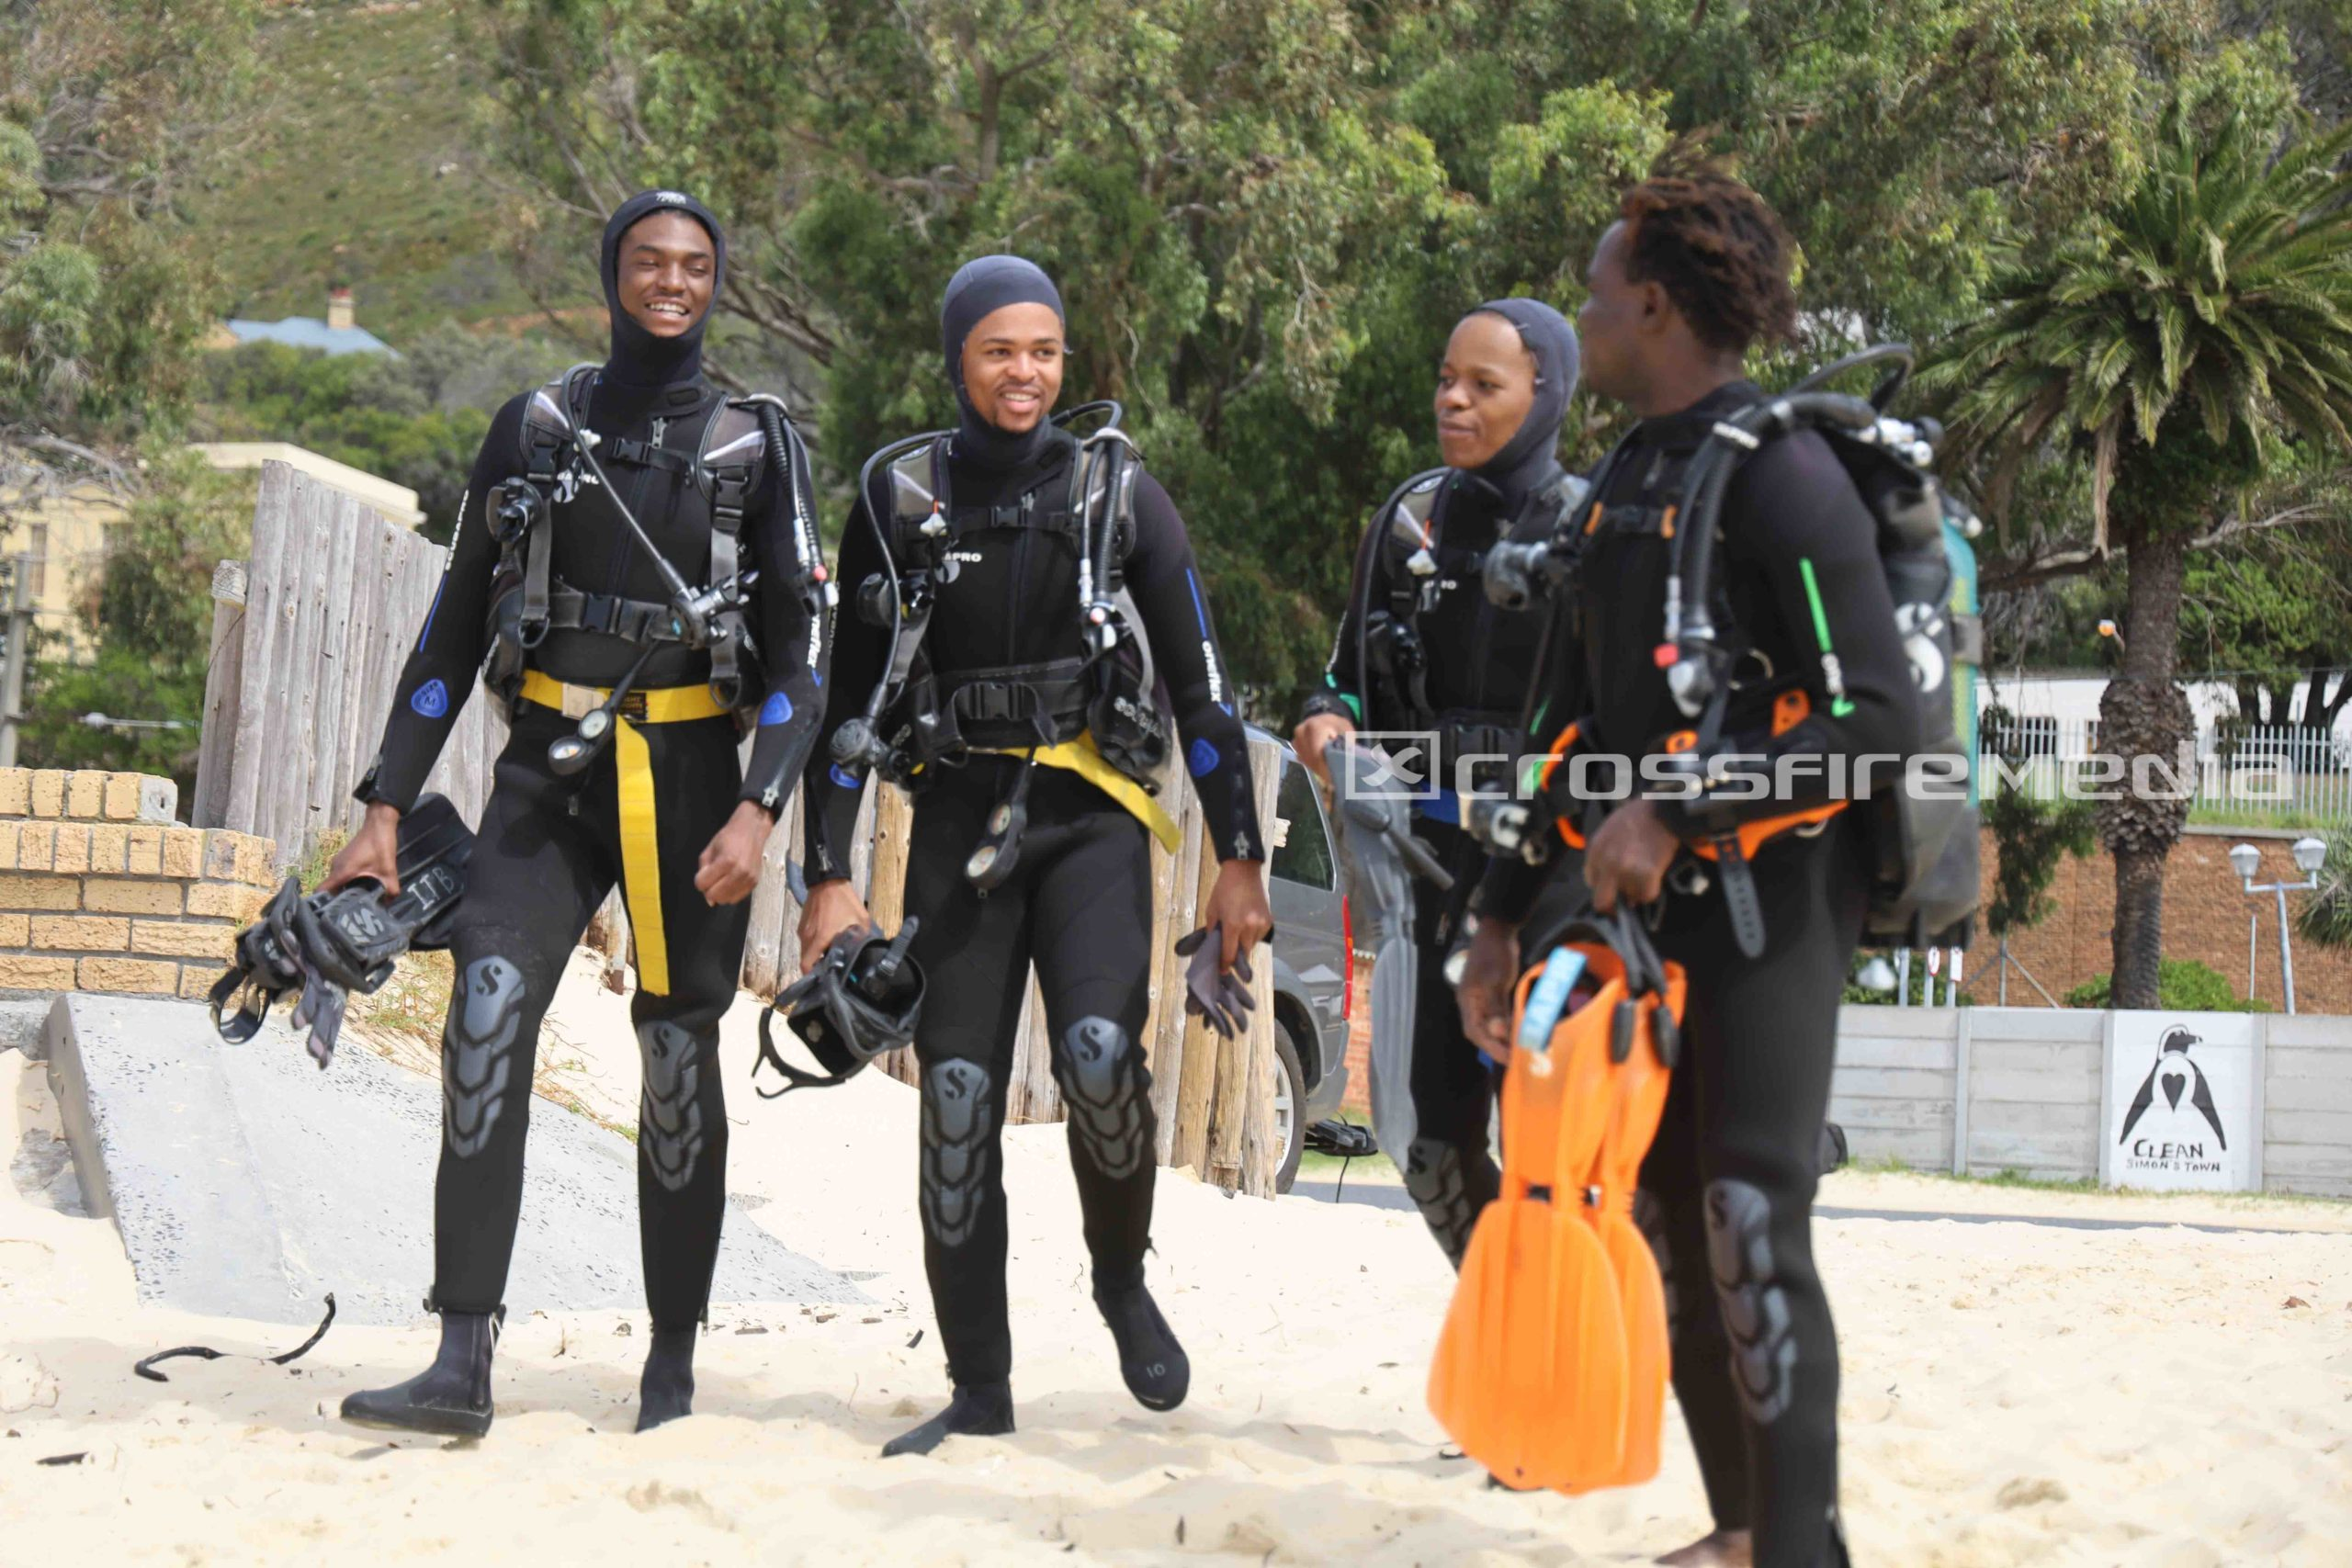 gallery image of divers in scuba gear on beach